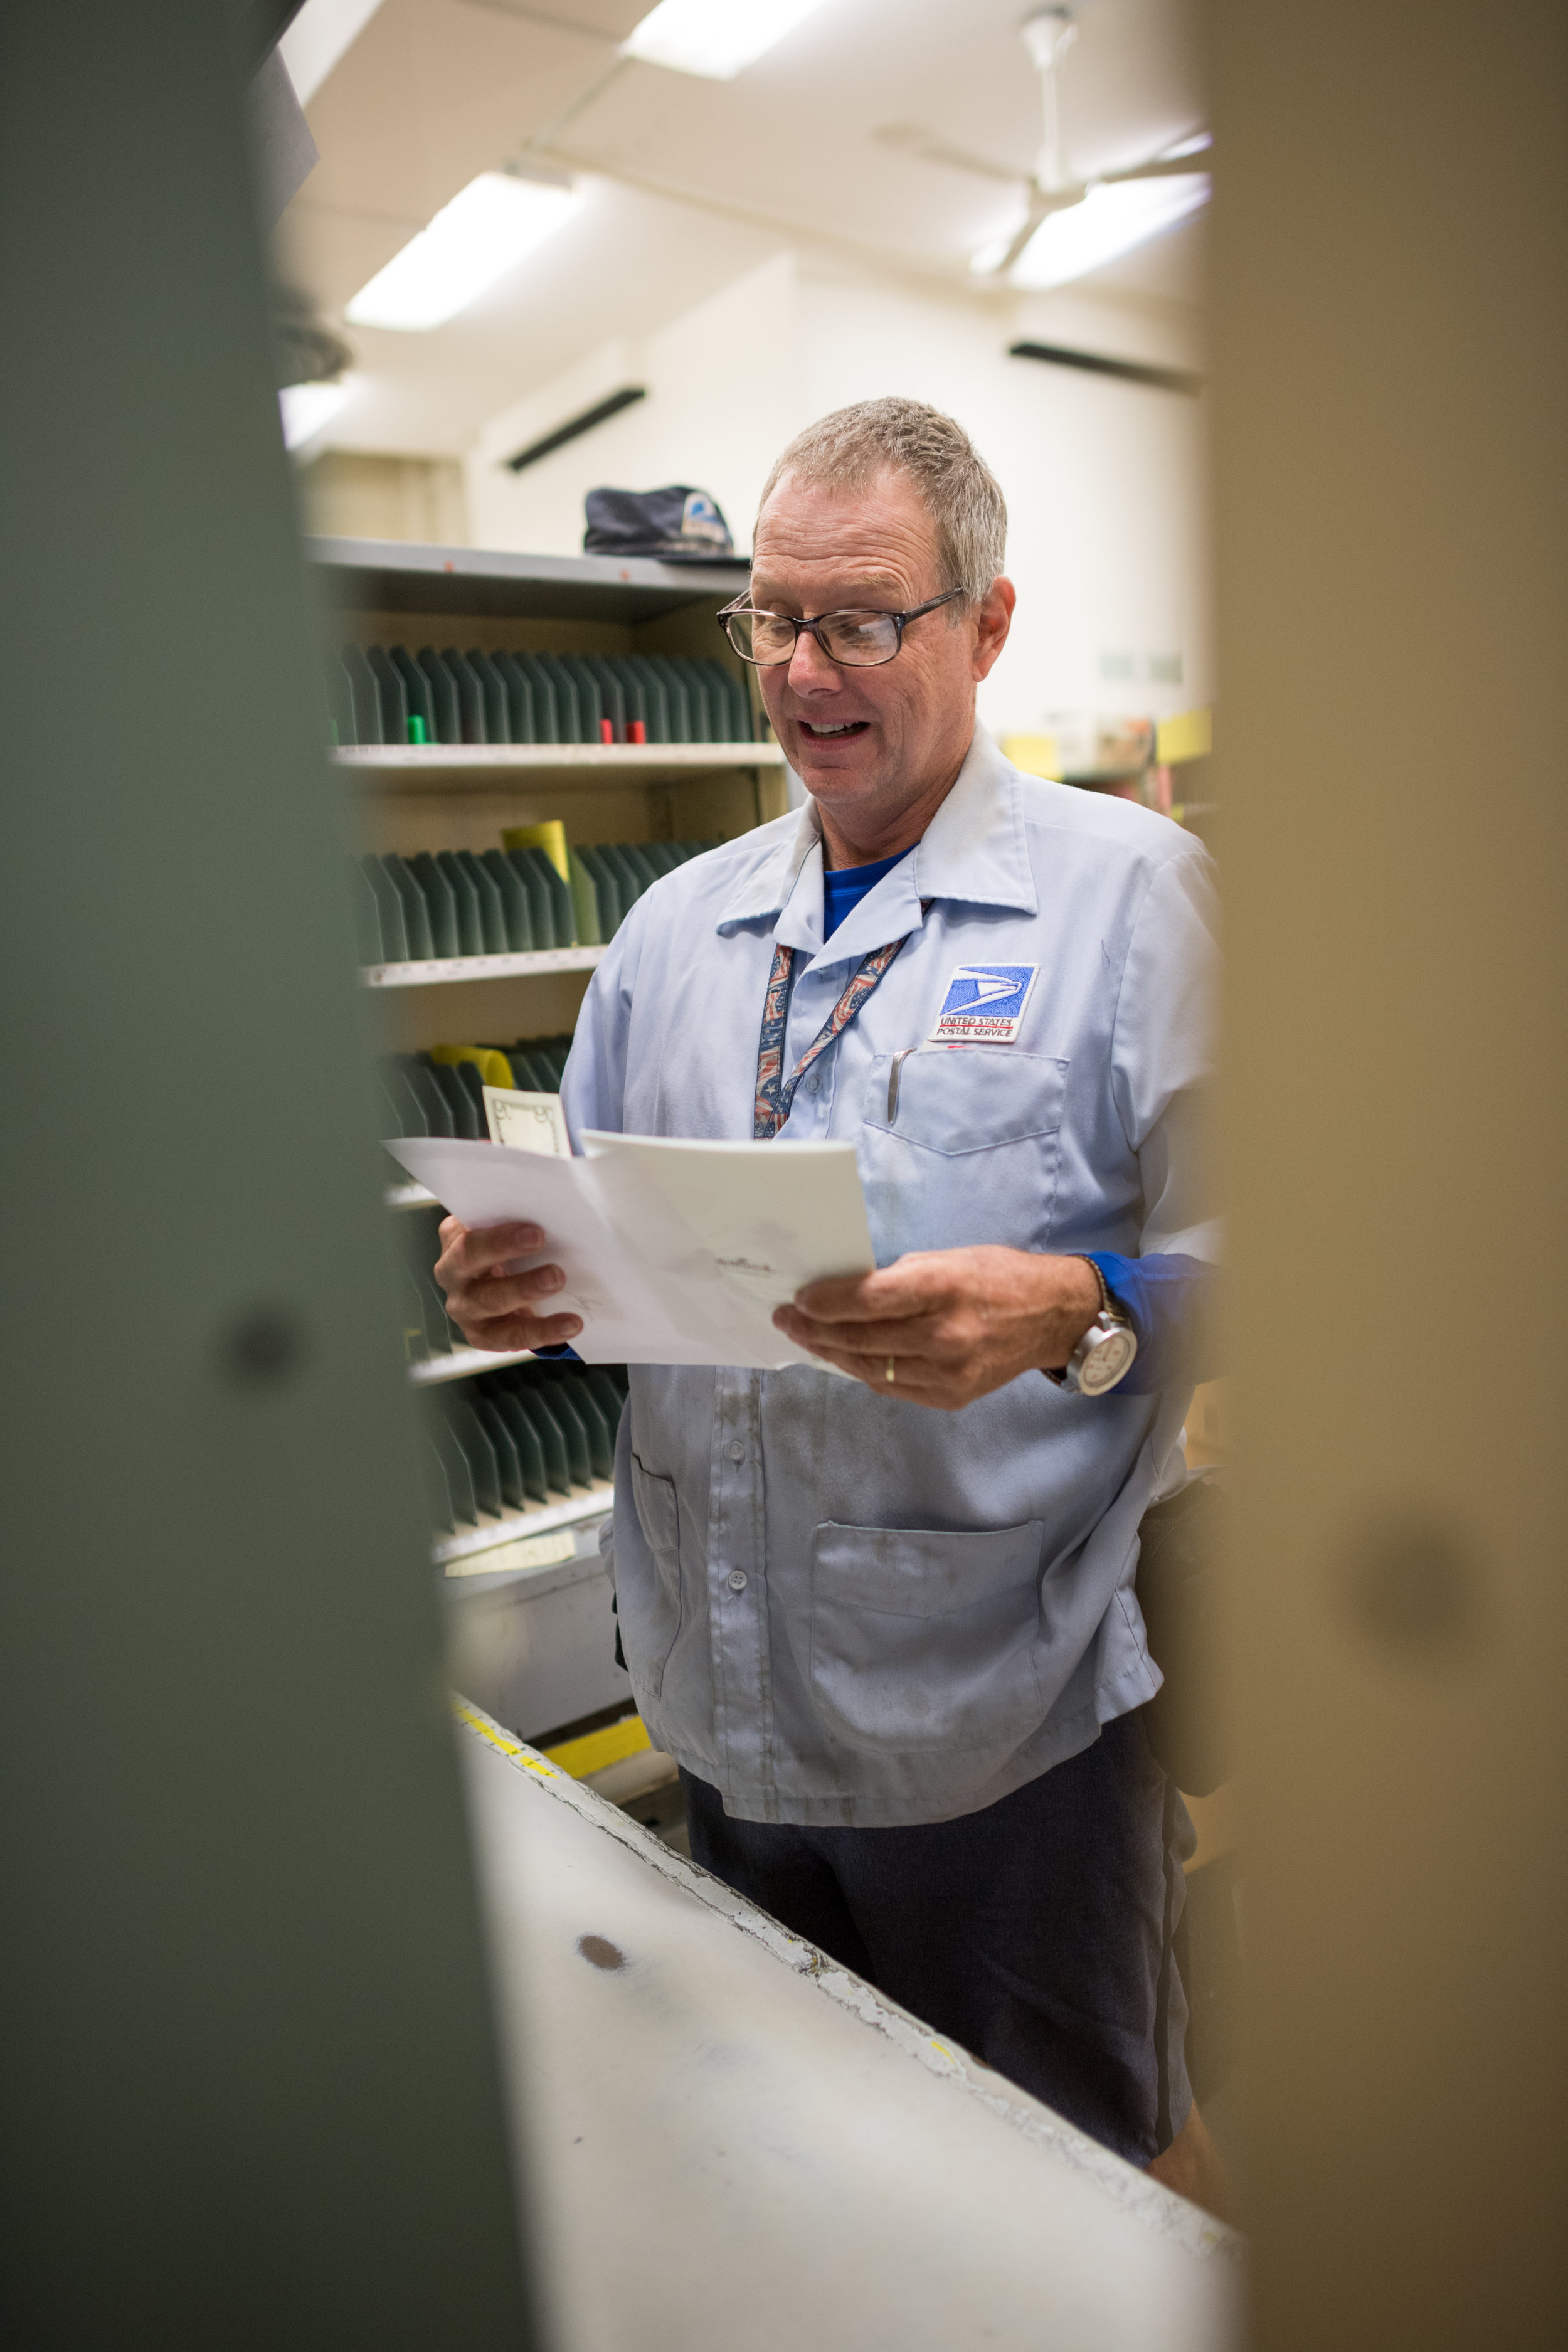 Before loading his truck and starting his route, Greg spends about an hour before each shift sorting mail and loading his cart.